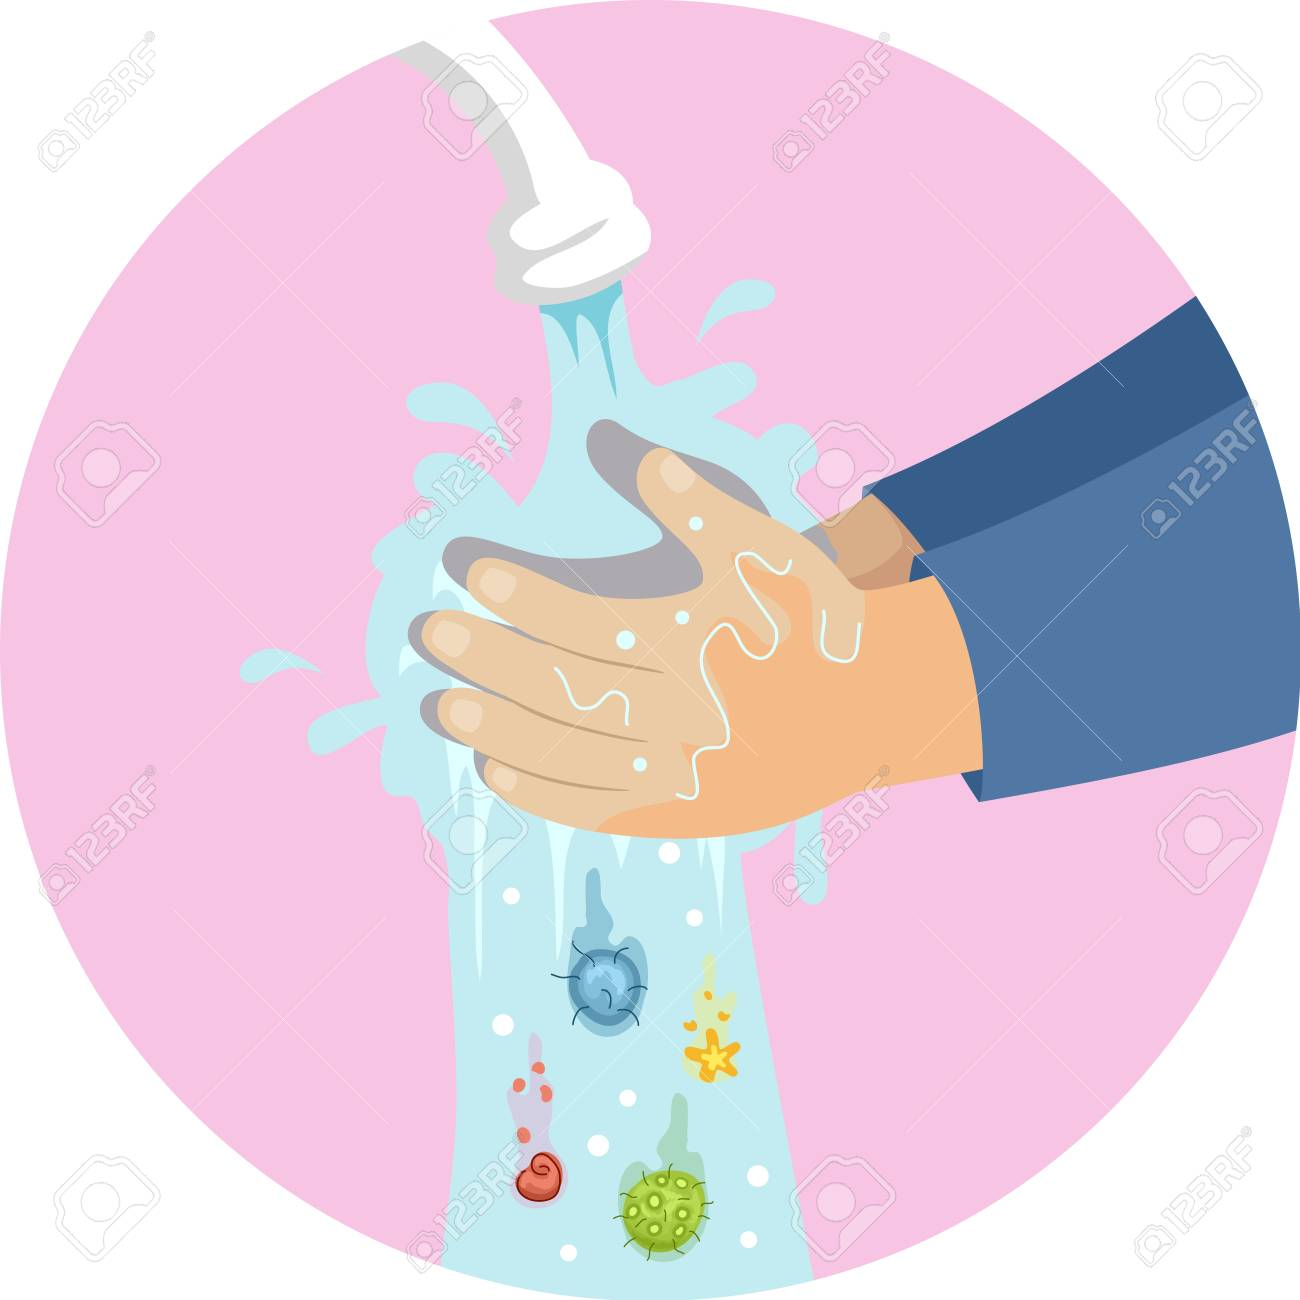 Illustration of a Kid Hands Washing Hands Under Faucet with Germs Falling Down - 103370097